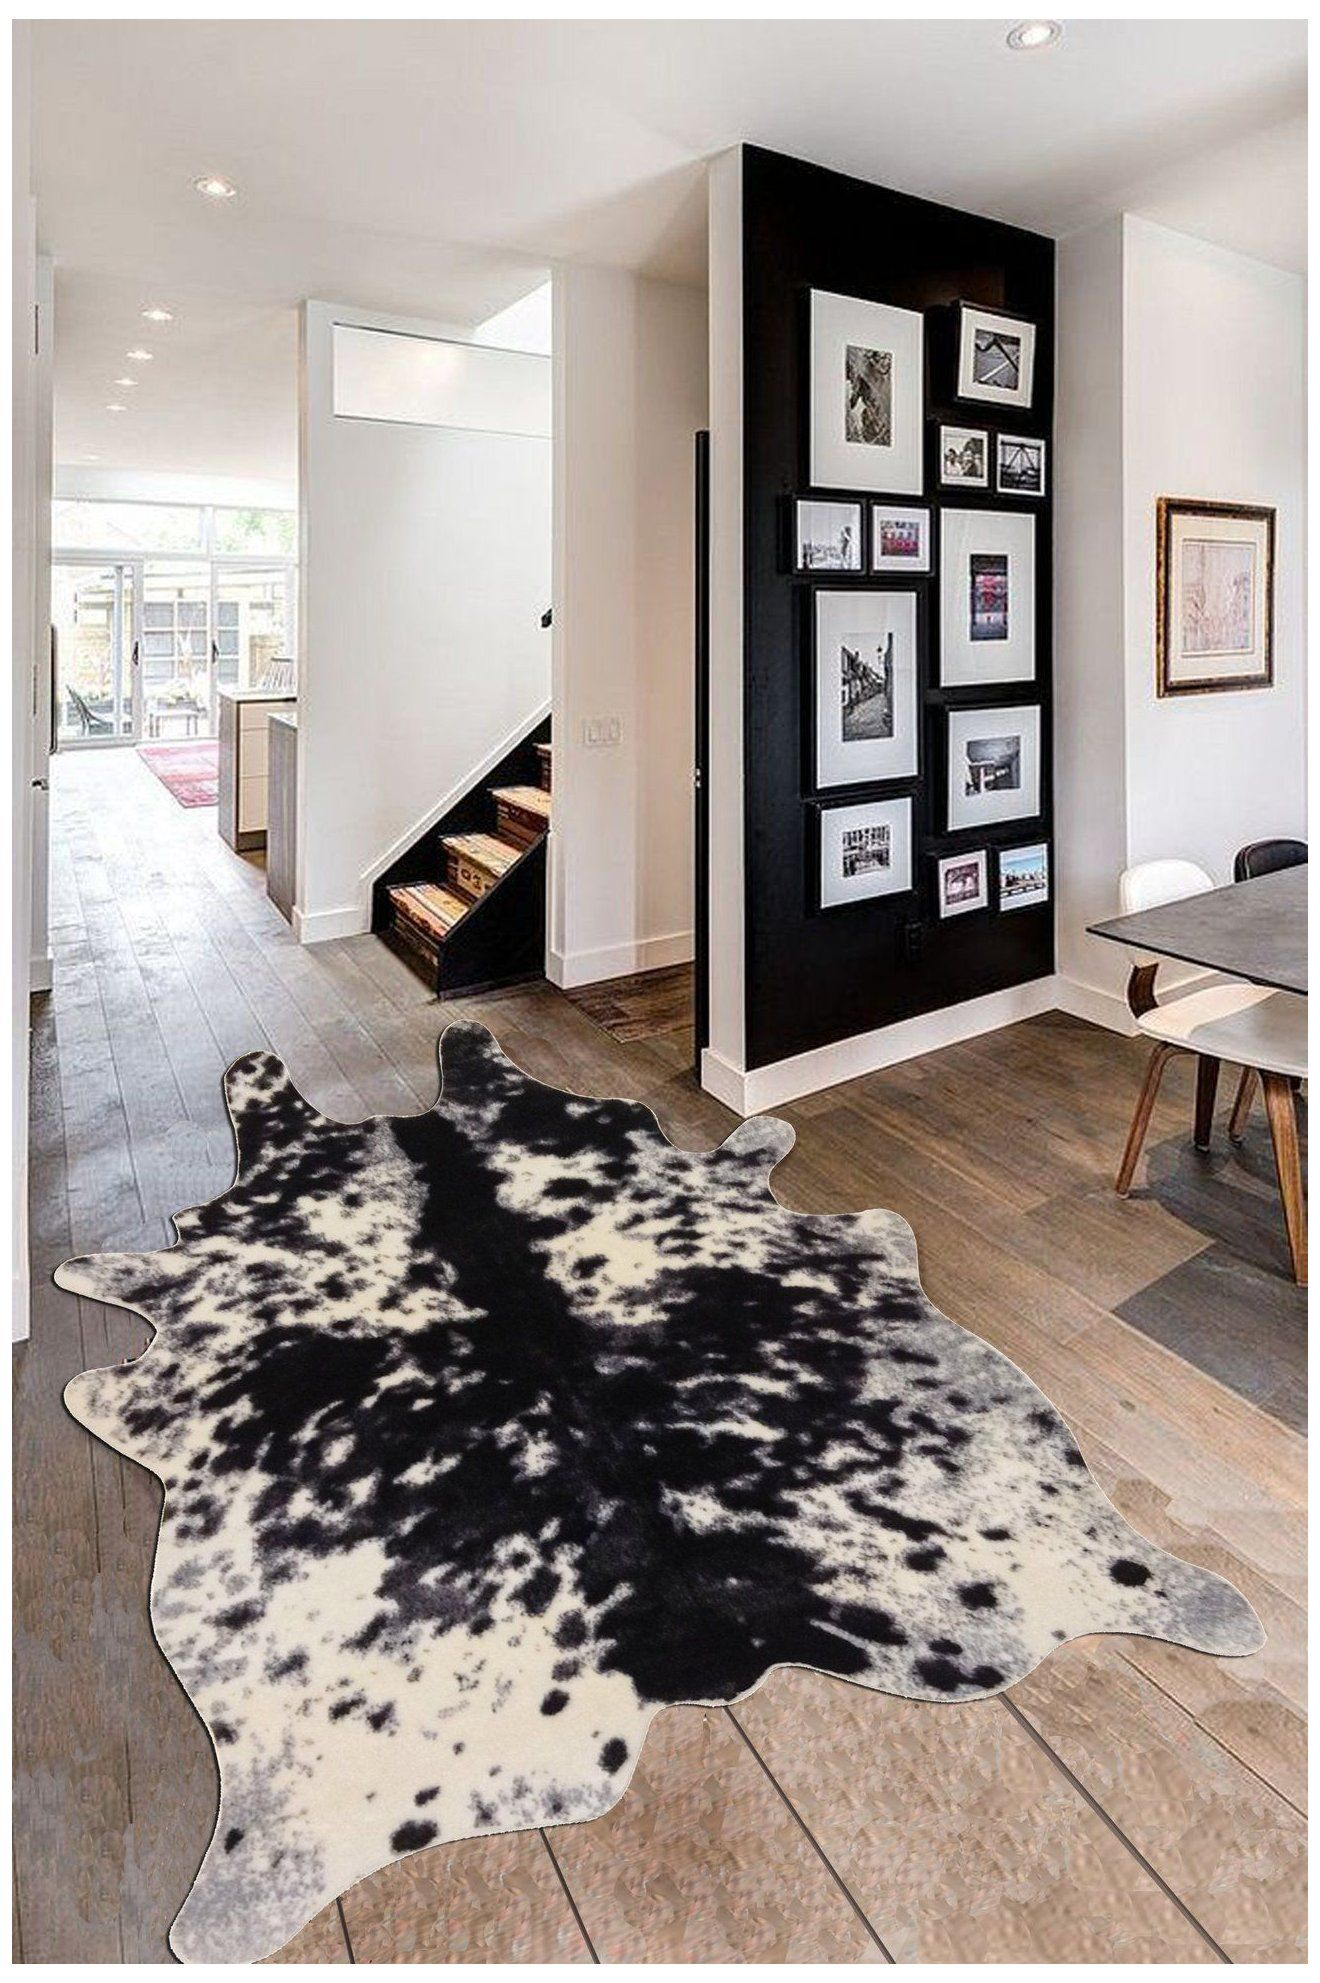 Faux Cowhide Rug Black And White Black And White Cowhide Rug Blackandwhitecowhiderug Faux Black And White In 2020 White Cowhide Rug Faux Cowhide Rug Cow Hide Rug